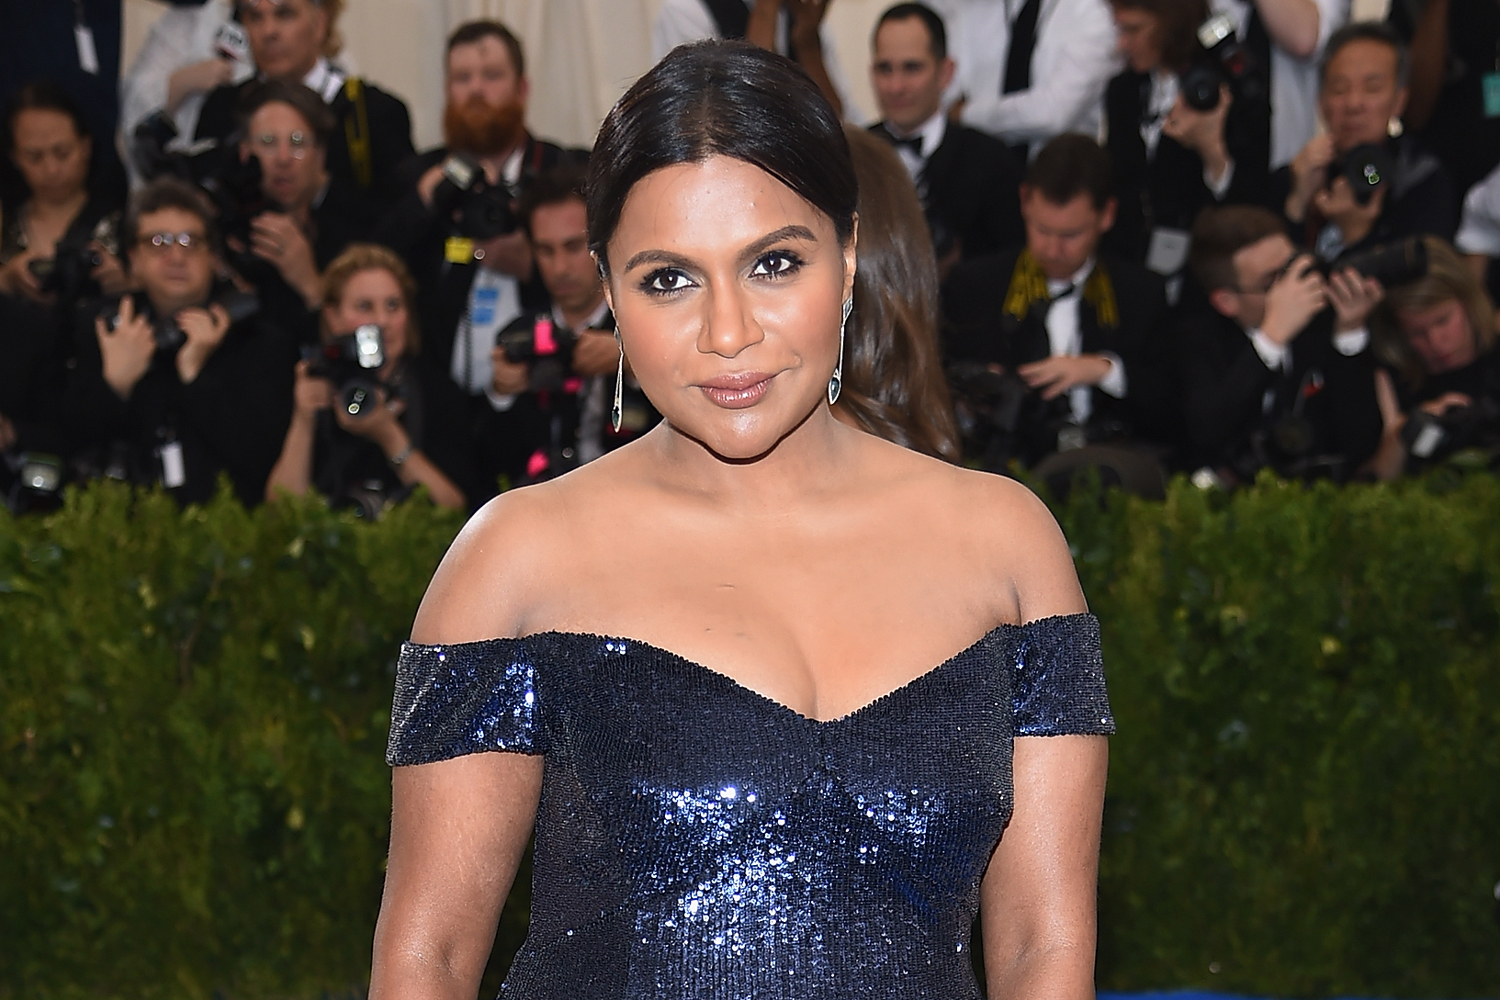 Met Gala 2017 Mindy Kaling And Karly Kloss Arrive By Subway And Cab The Daily Dish